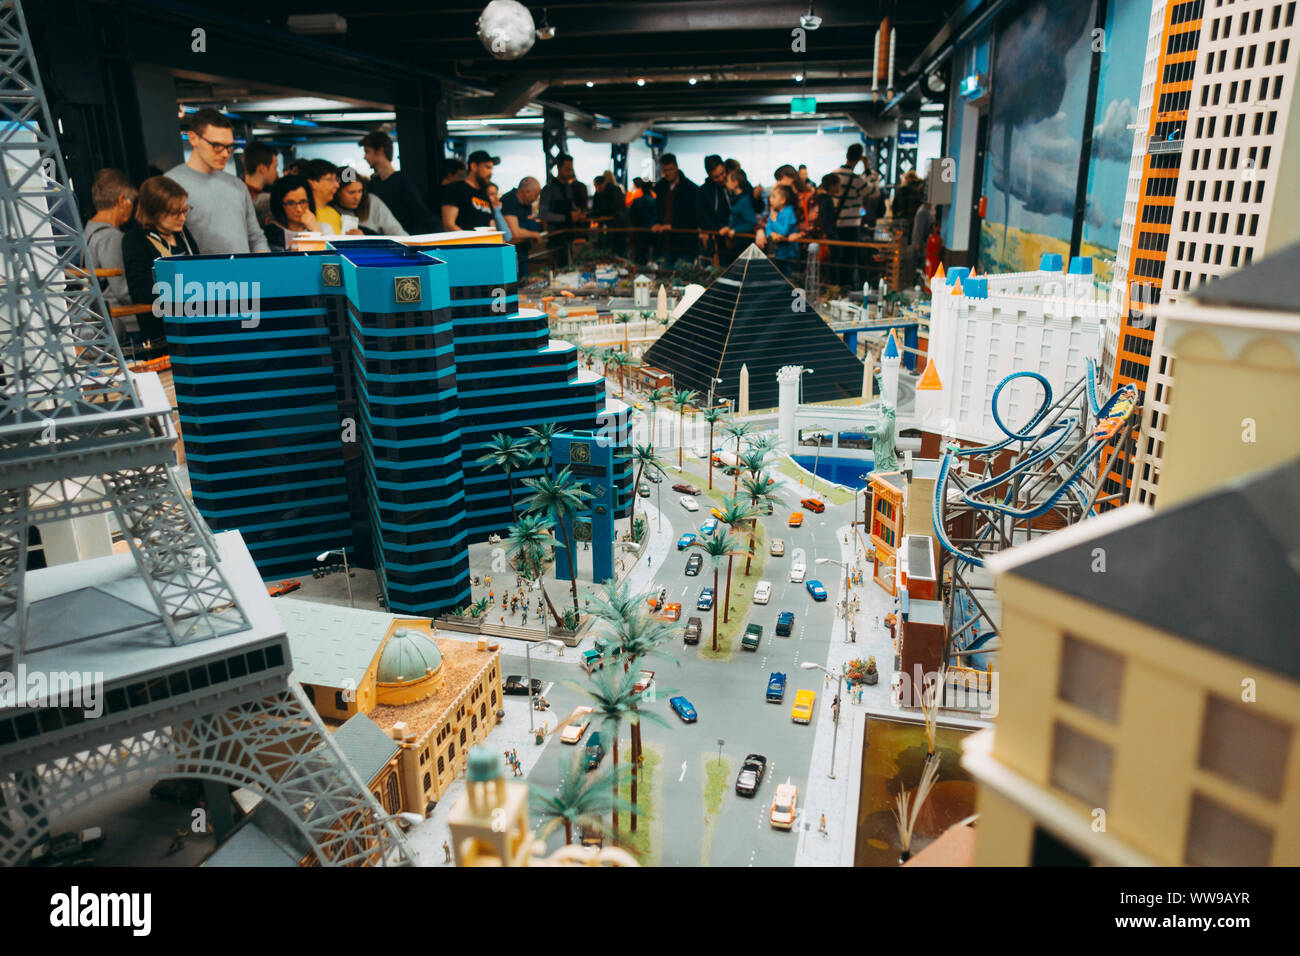 A miniature version of the Las Vegas strip in the America section of Miniatur Wunderland in Hamburg, Germany Stock Photo